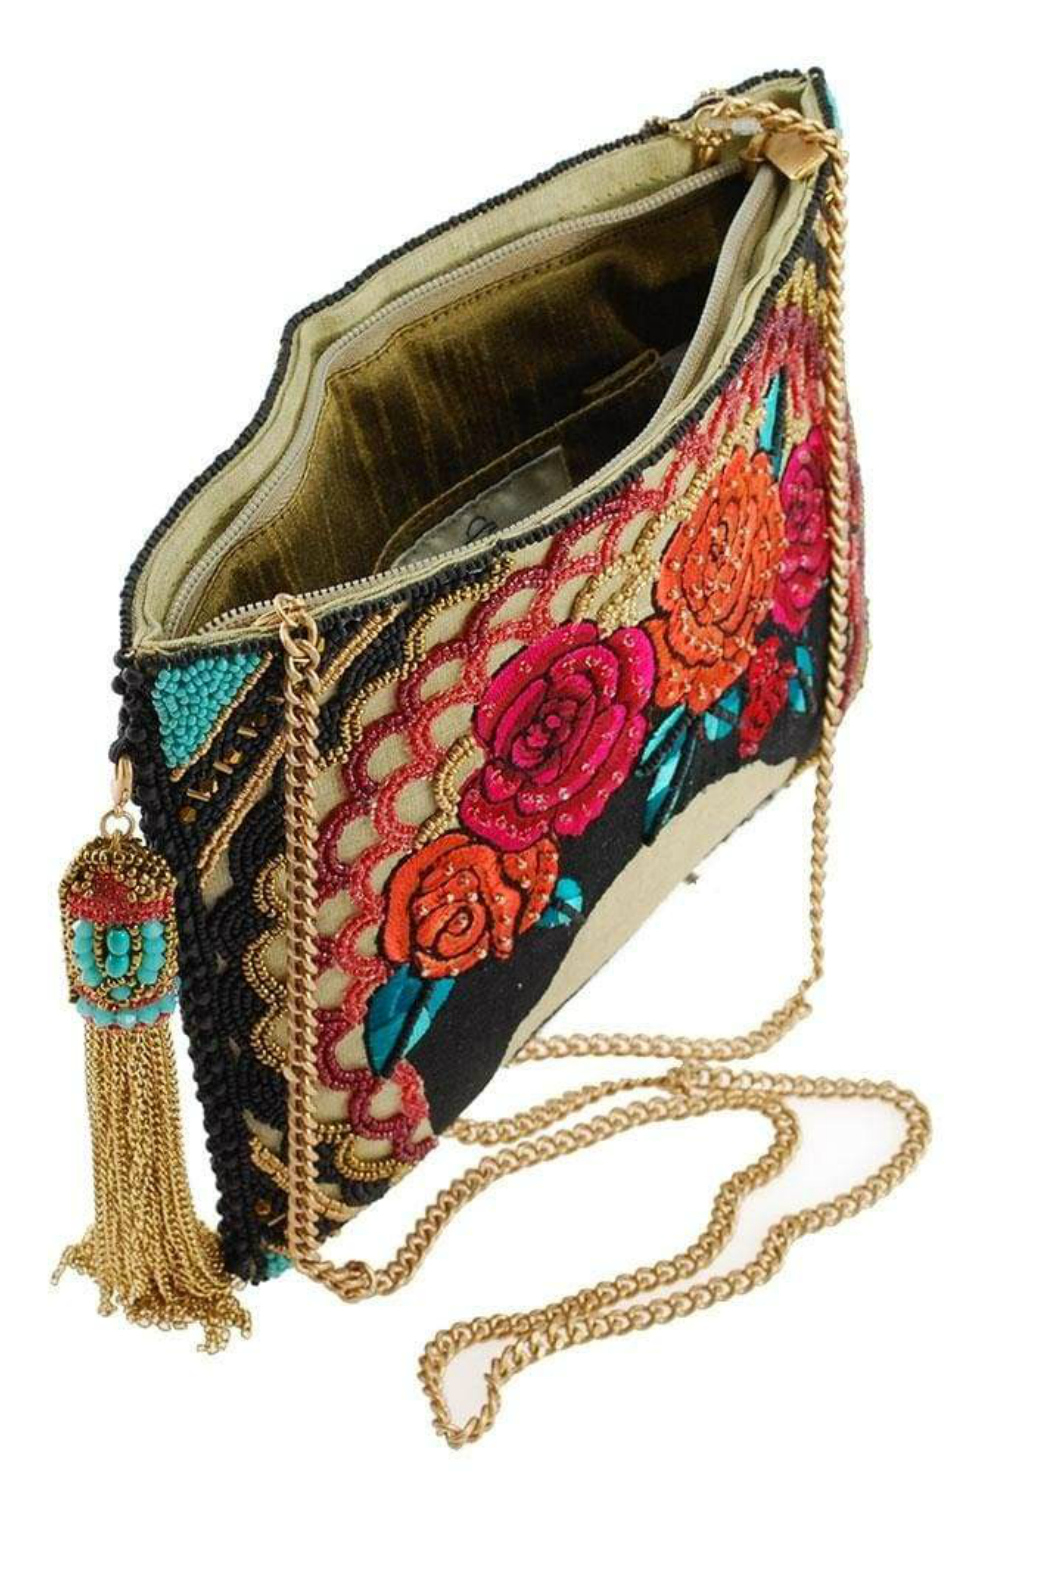 Mary Frances  Frida Beaded-Embroidered Crossbody Clutch Handbag - Side Cropped Image